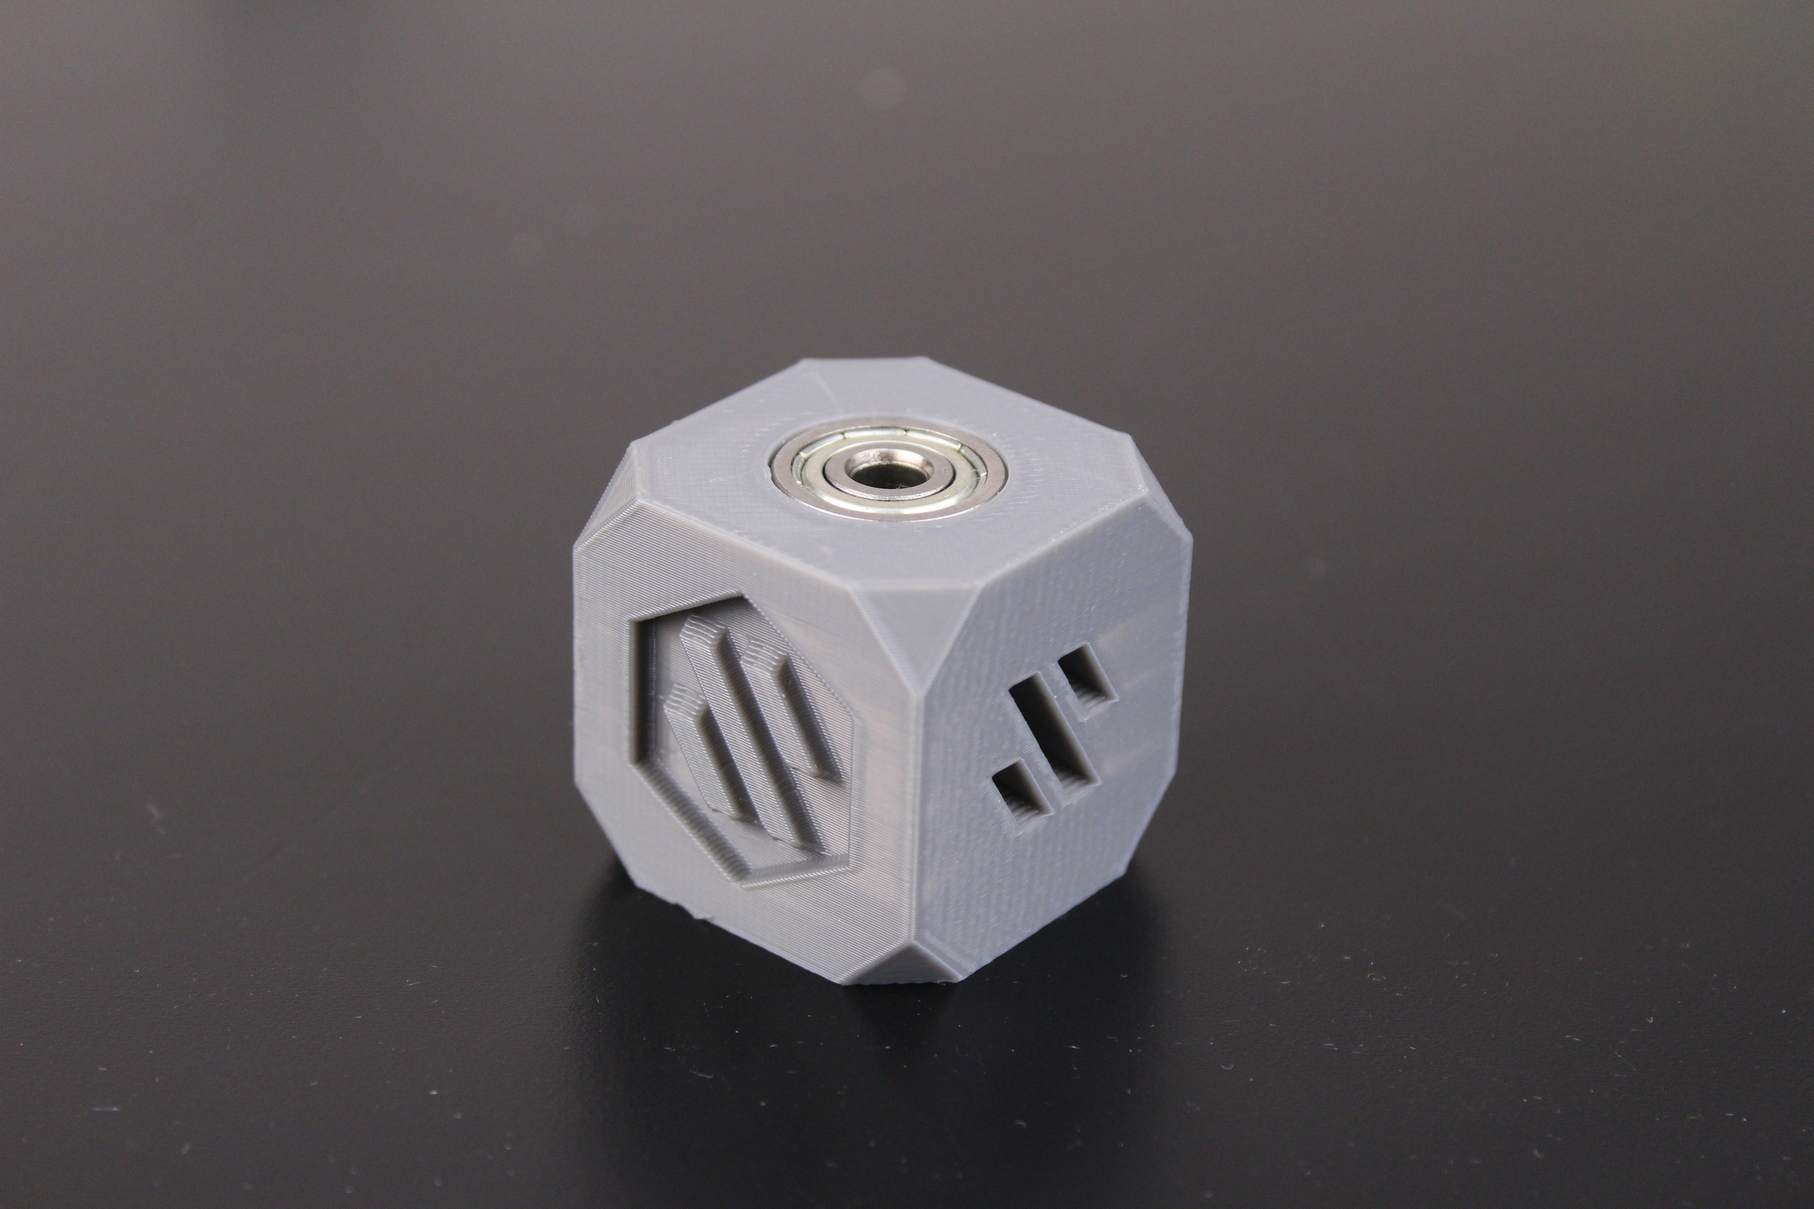 Voron-Cube-printed-on-the-Sermoon-D1-in-PLA-5